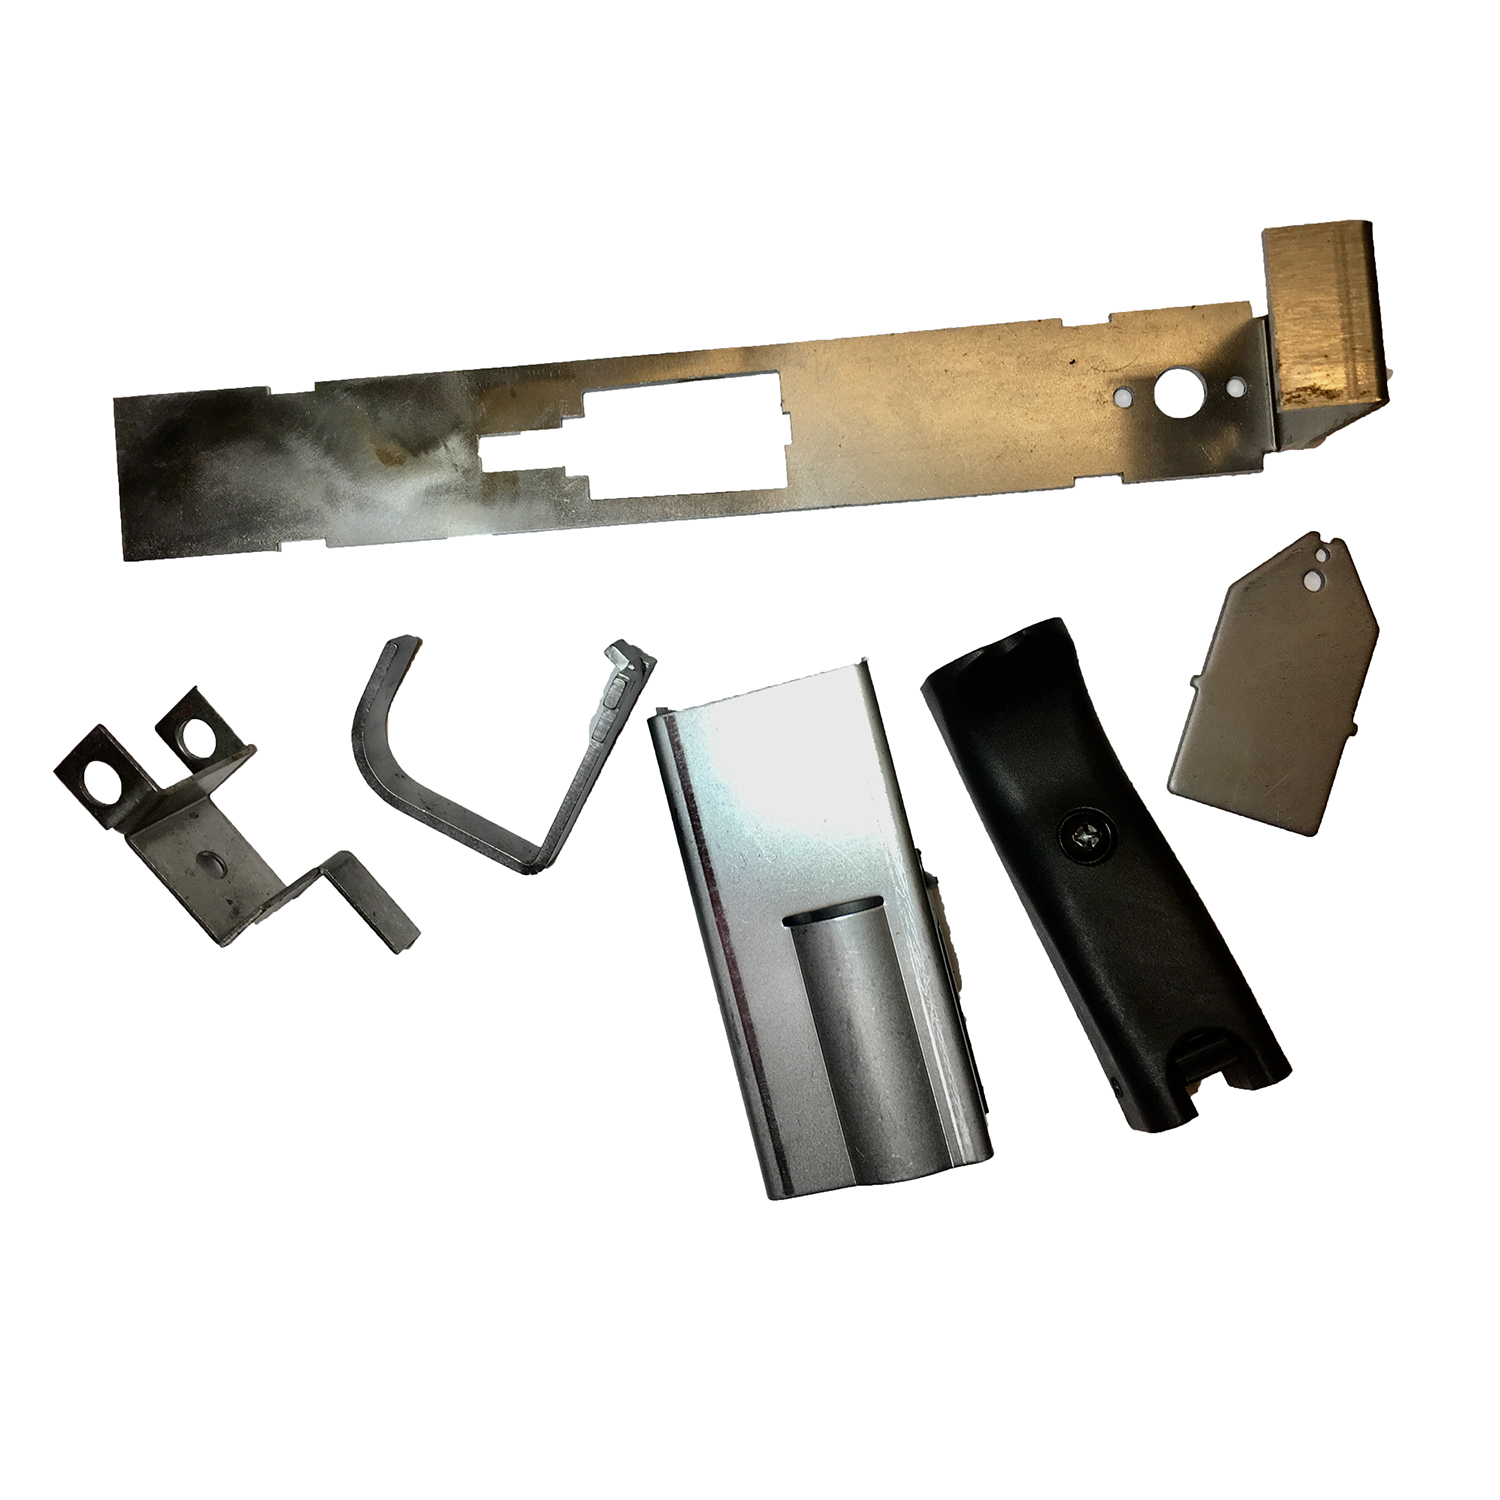 Frame Weld Parts | Firearm Parts & Accessories - Gun Parts